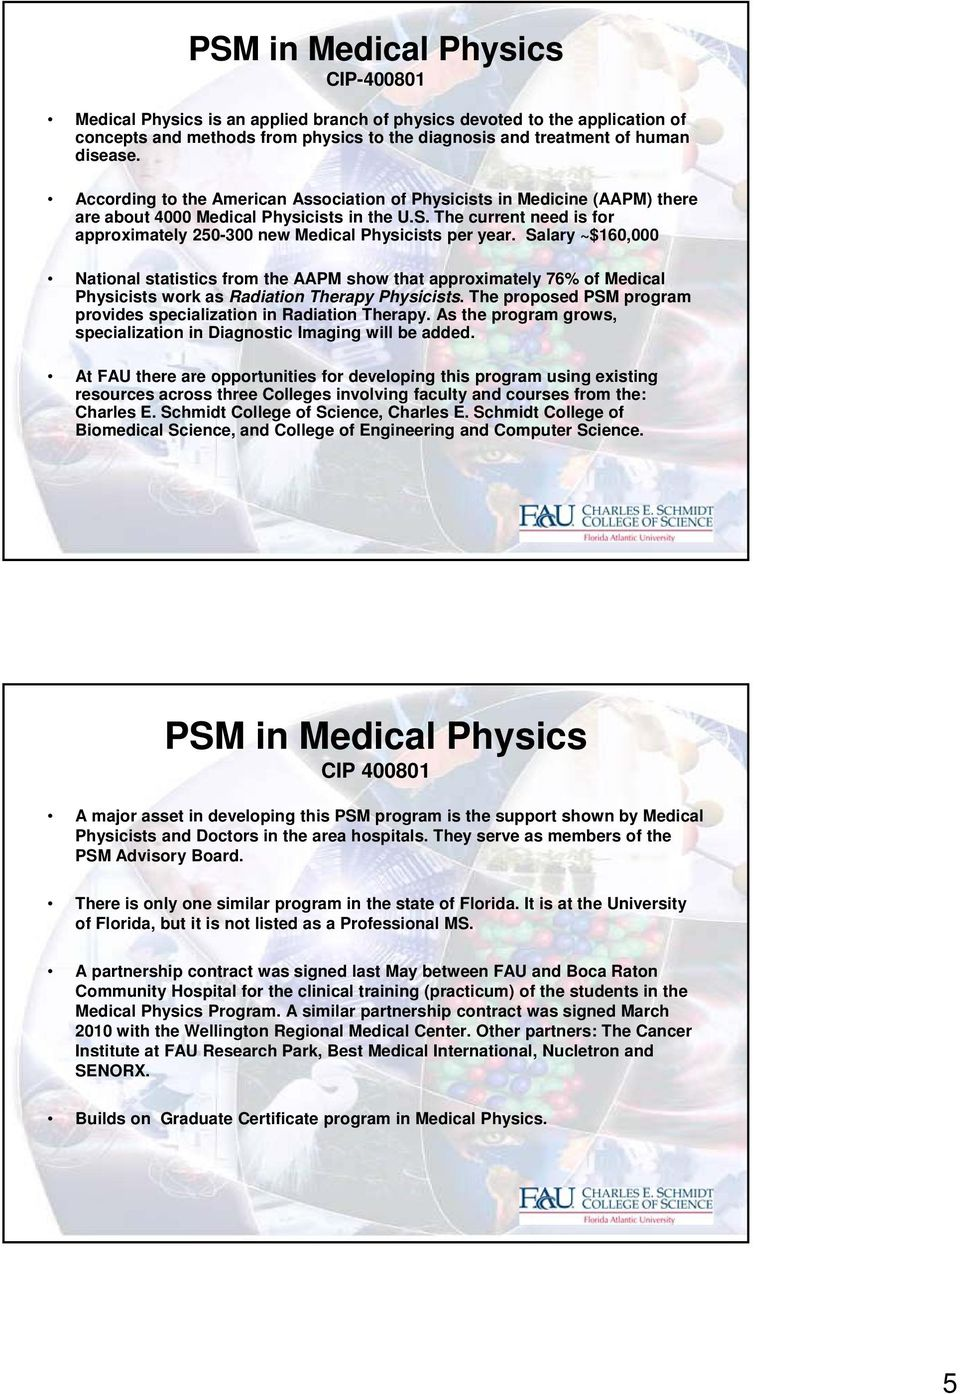 The current need is for approximately 250-300 new Medical Physicists per year.